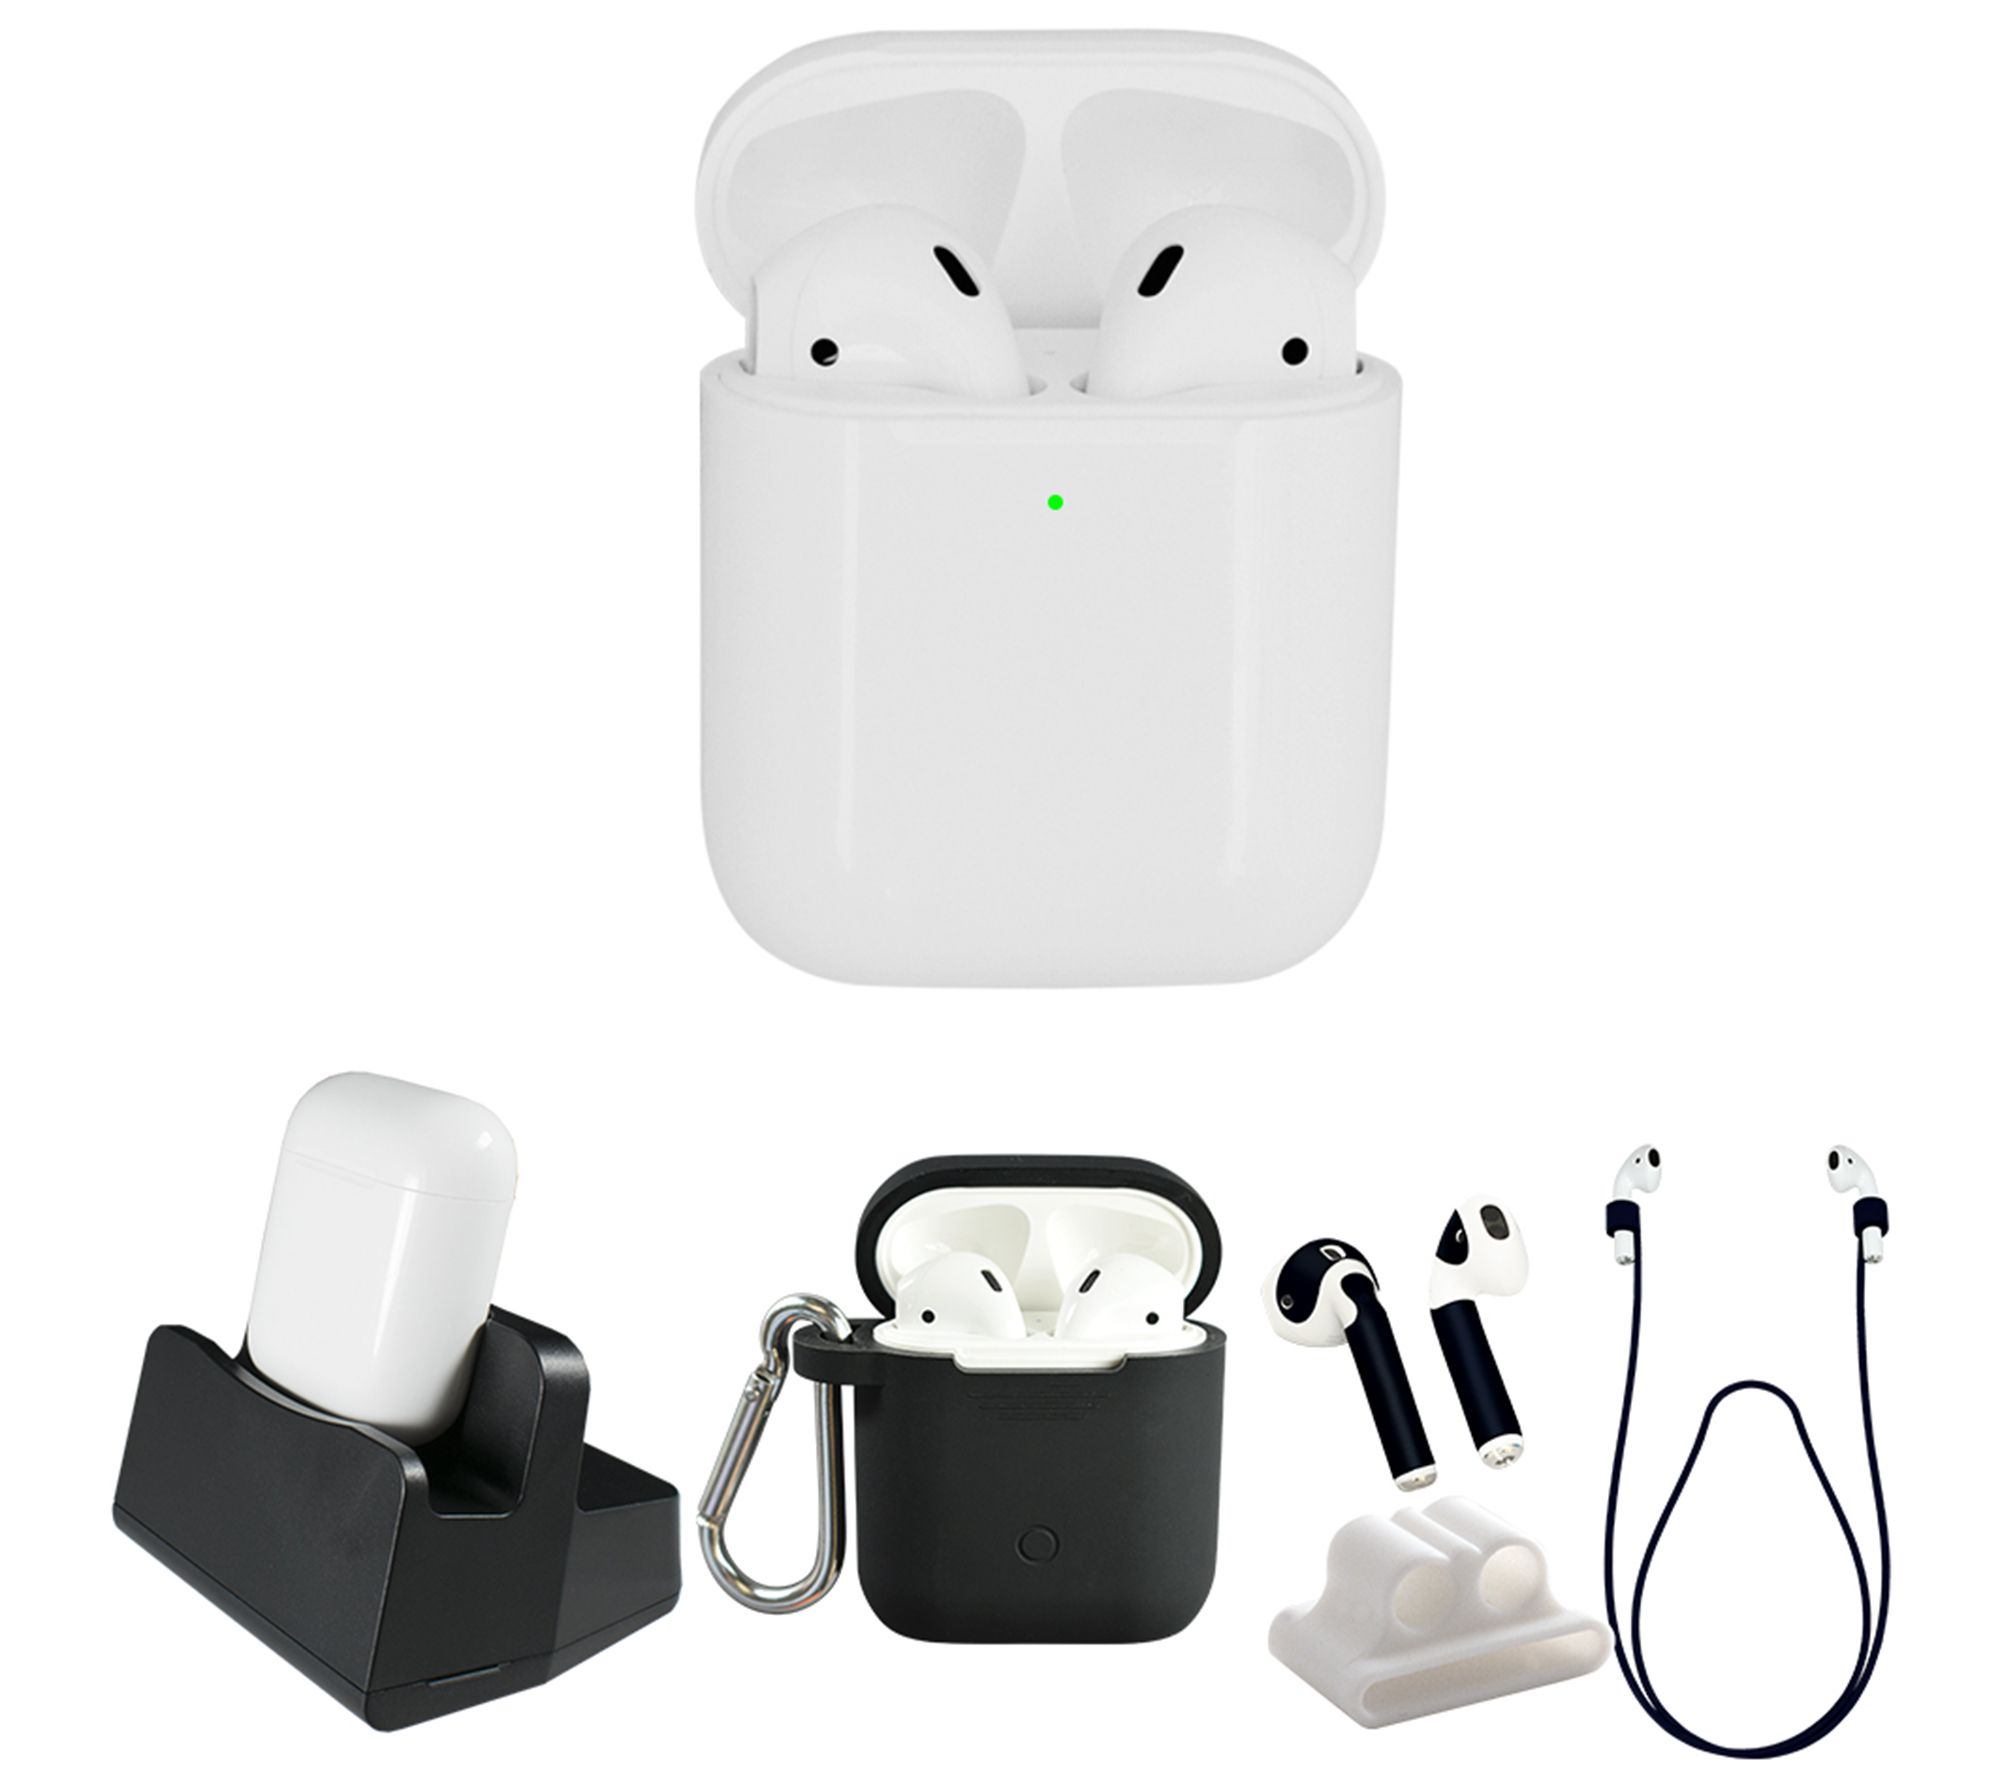 ee118fafa60 Apple AirPods 2nd Generation with Wireless Charging Case & Accessories -  Page 1 — QVC.com